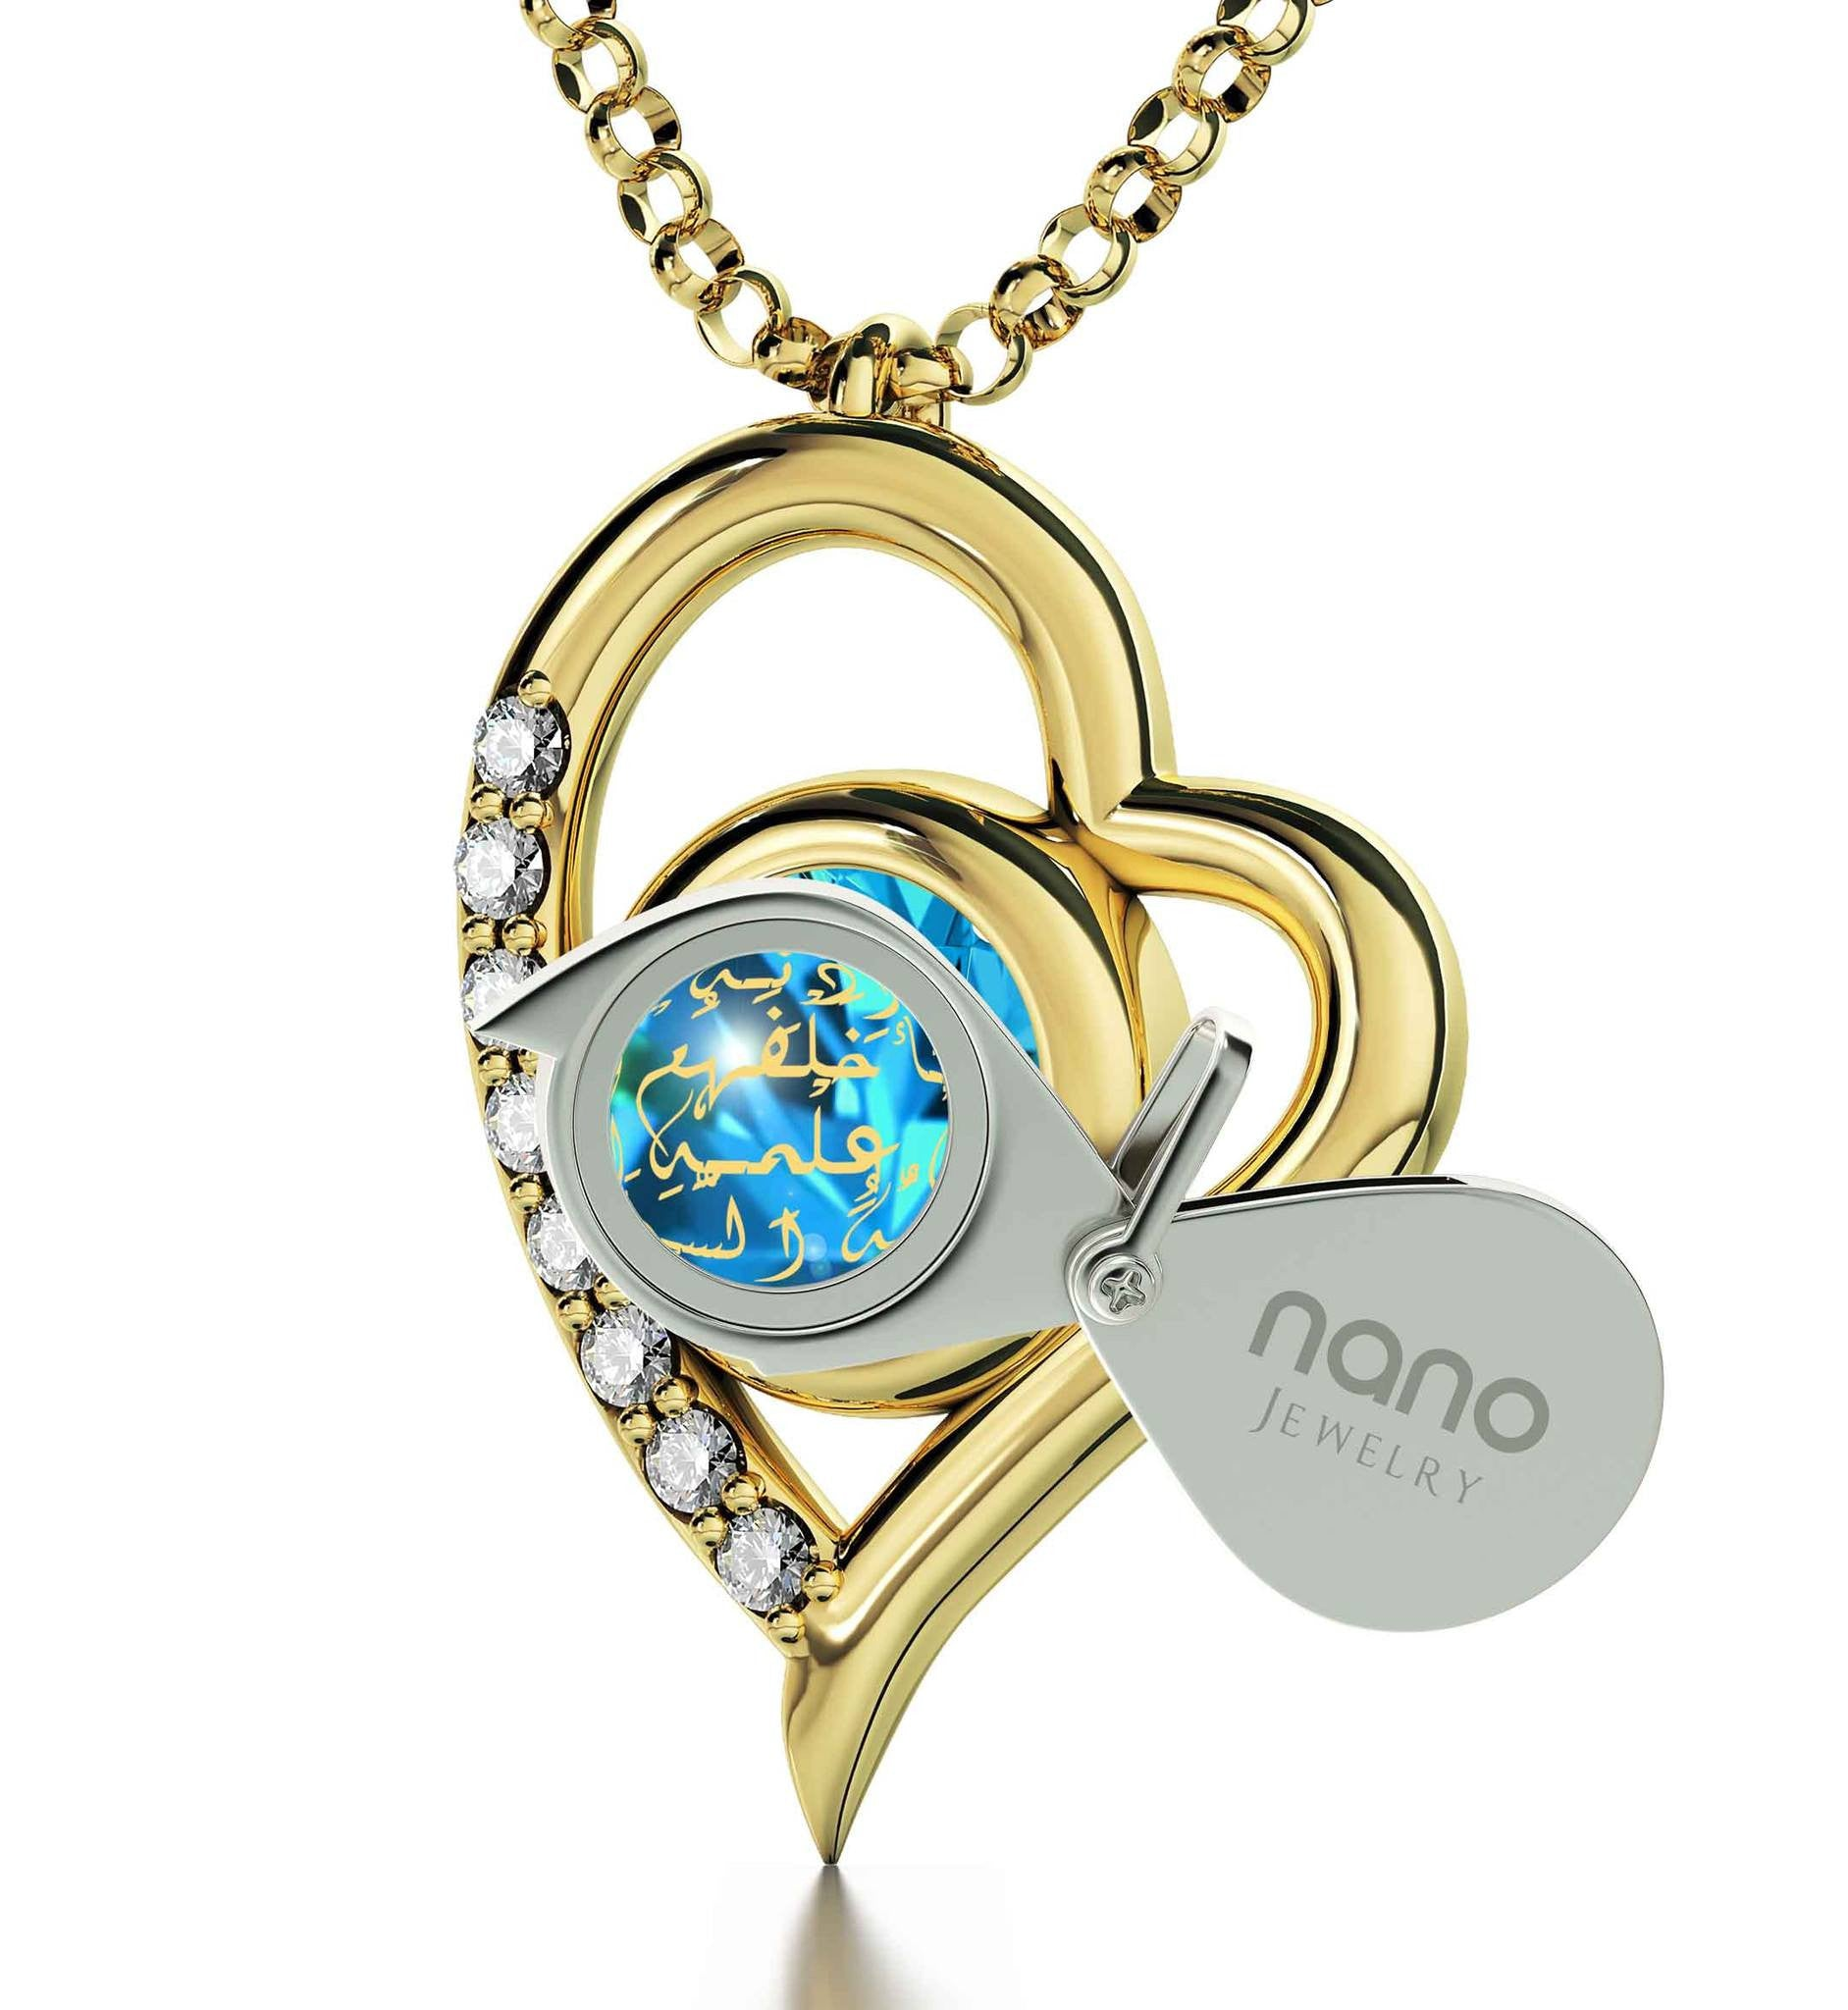 Muslim Gifts for Wife: 14k Heart Diamonds with Ayatul Kursi - Nano Jewelry